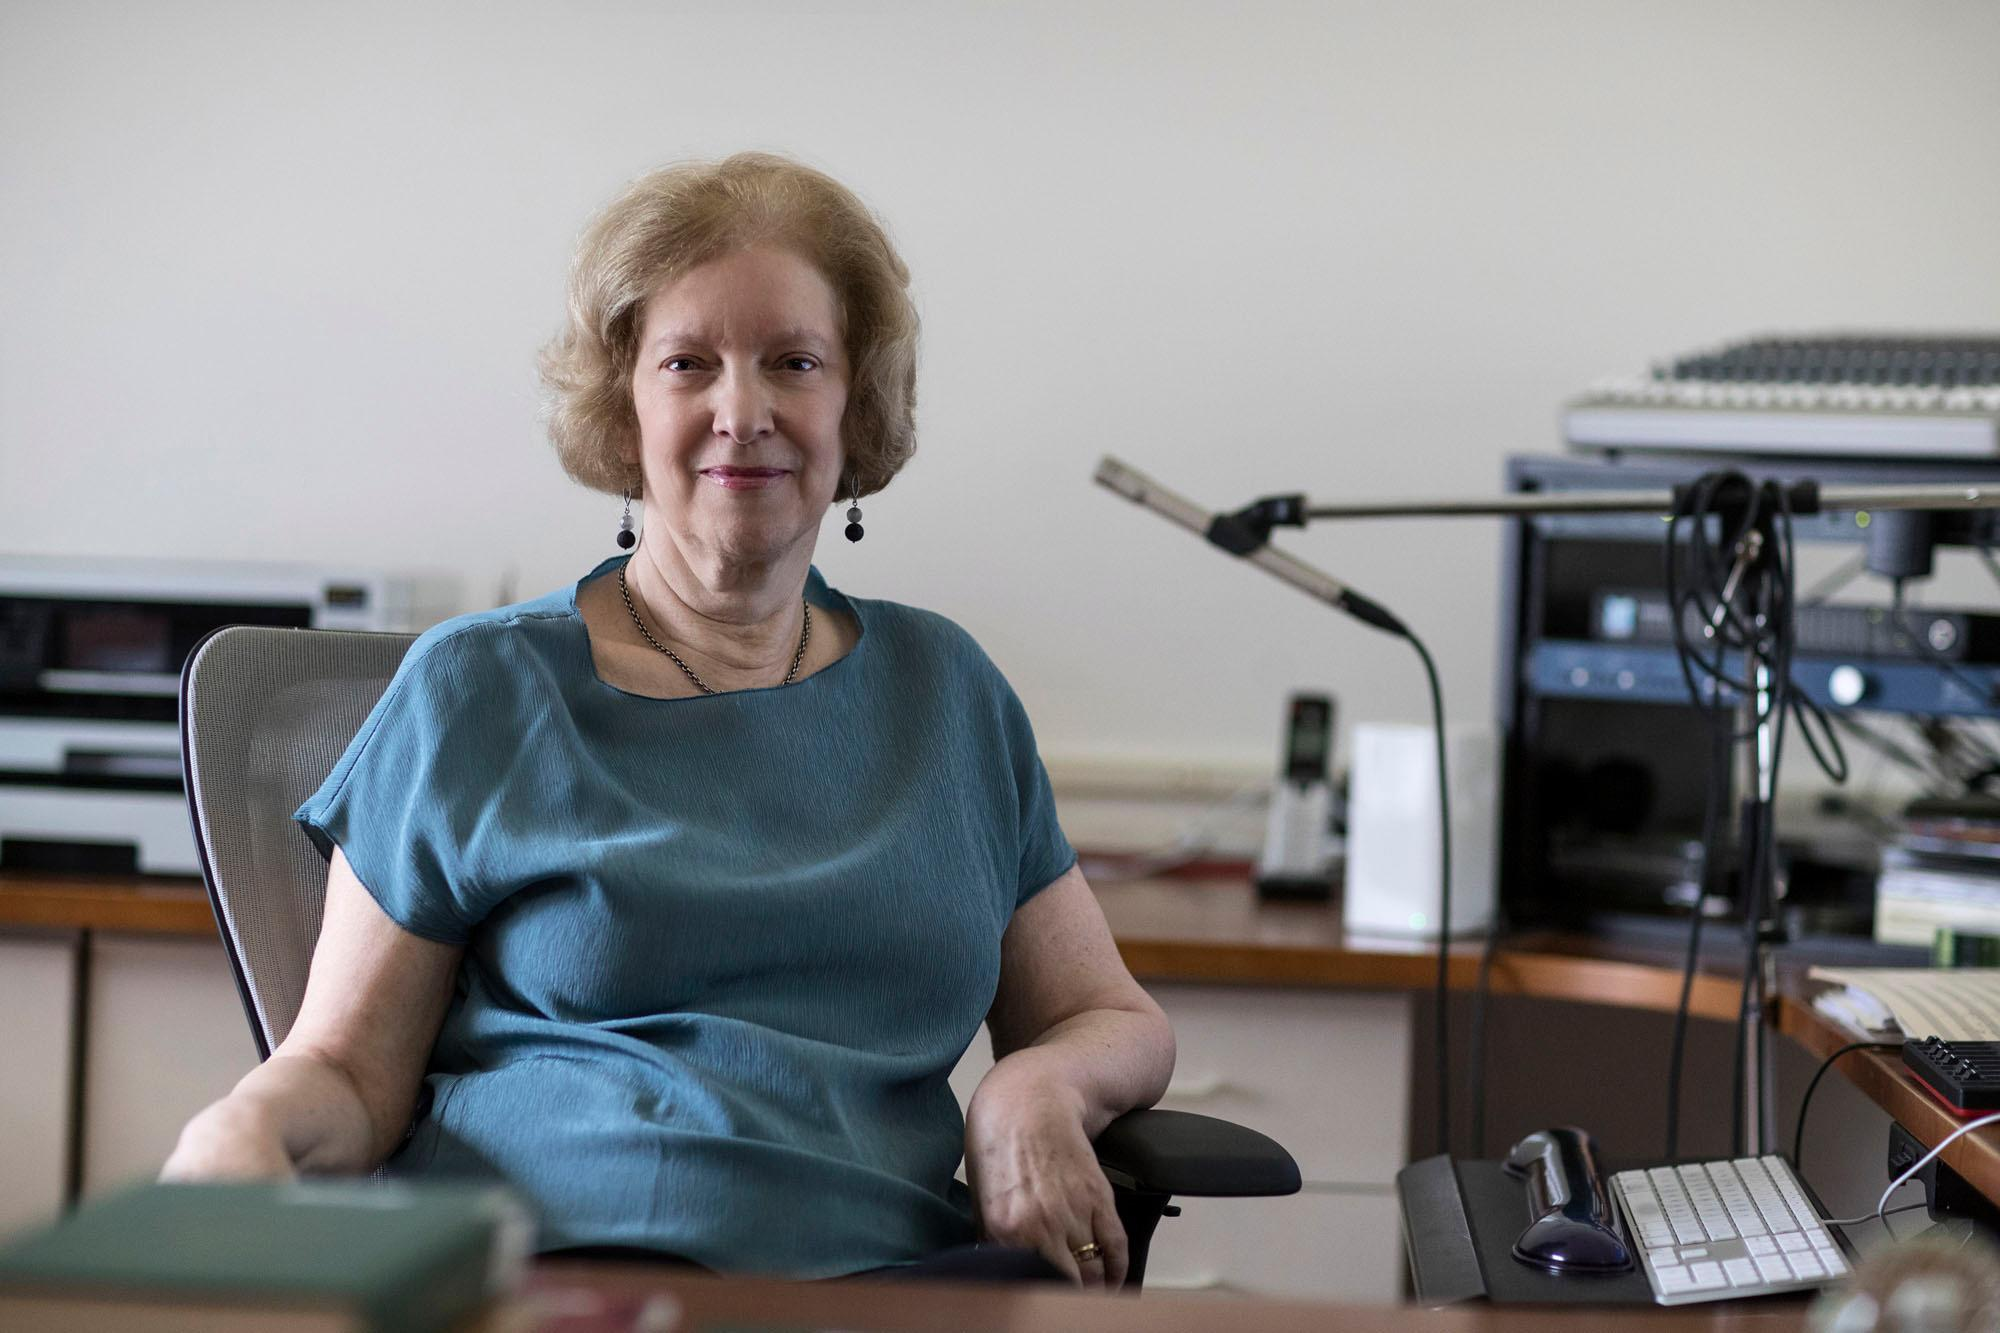 Judith Shatin founded the Virginia Center for Computer Music at UVA and developed UVA's Ph.D. program in Composition and Computer Technologies.